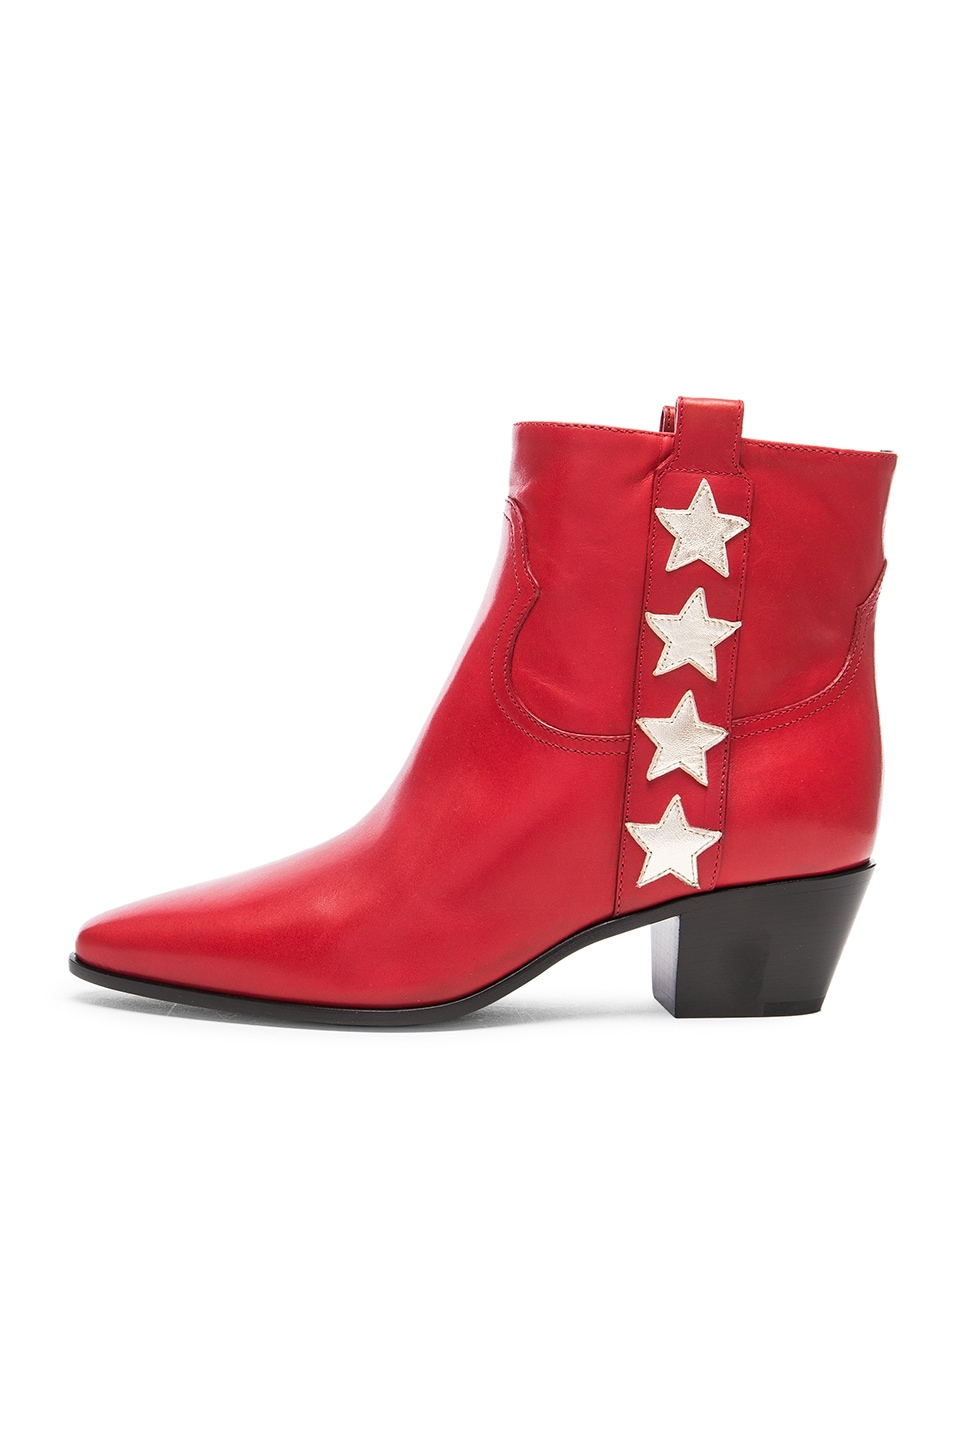 Image 5 of Saint Laurent Rock Leather Boots in Red & Pale Gold